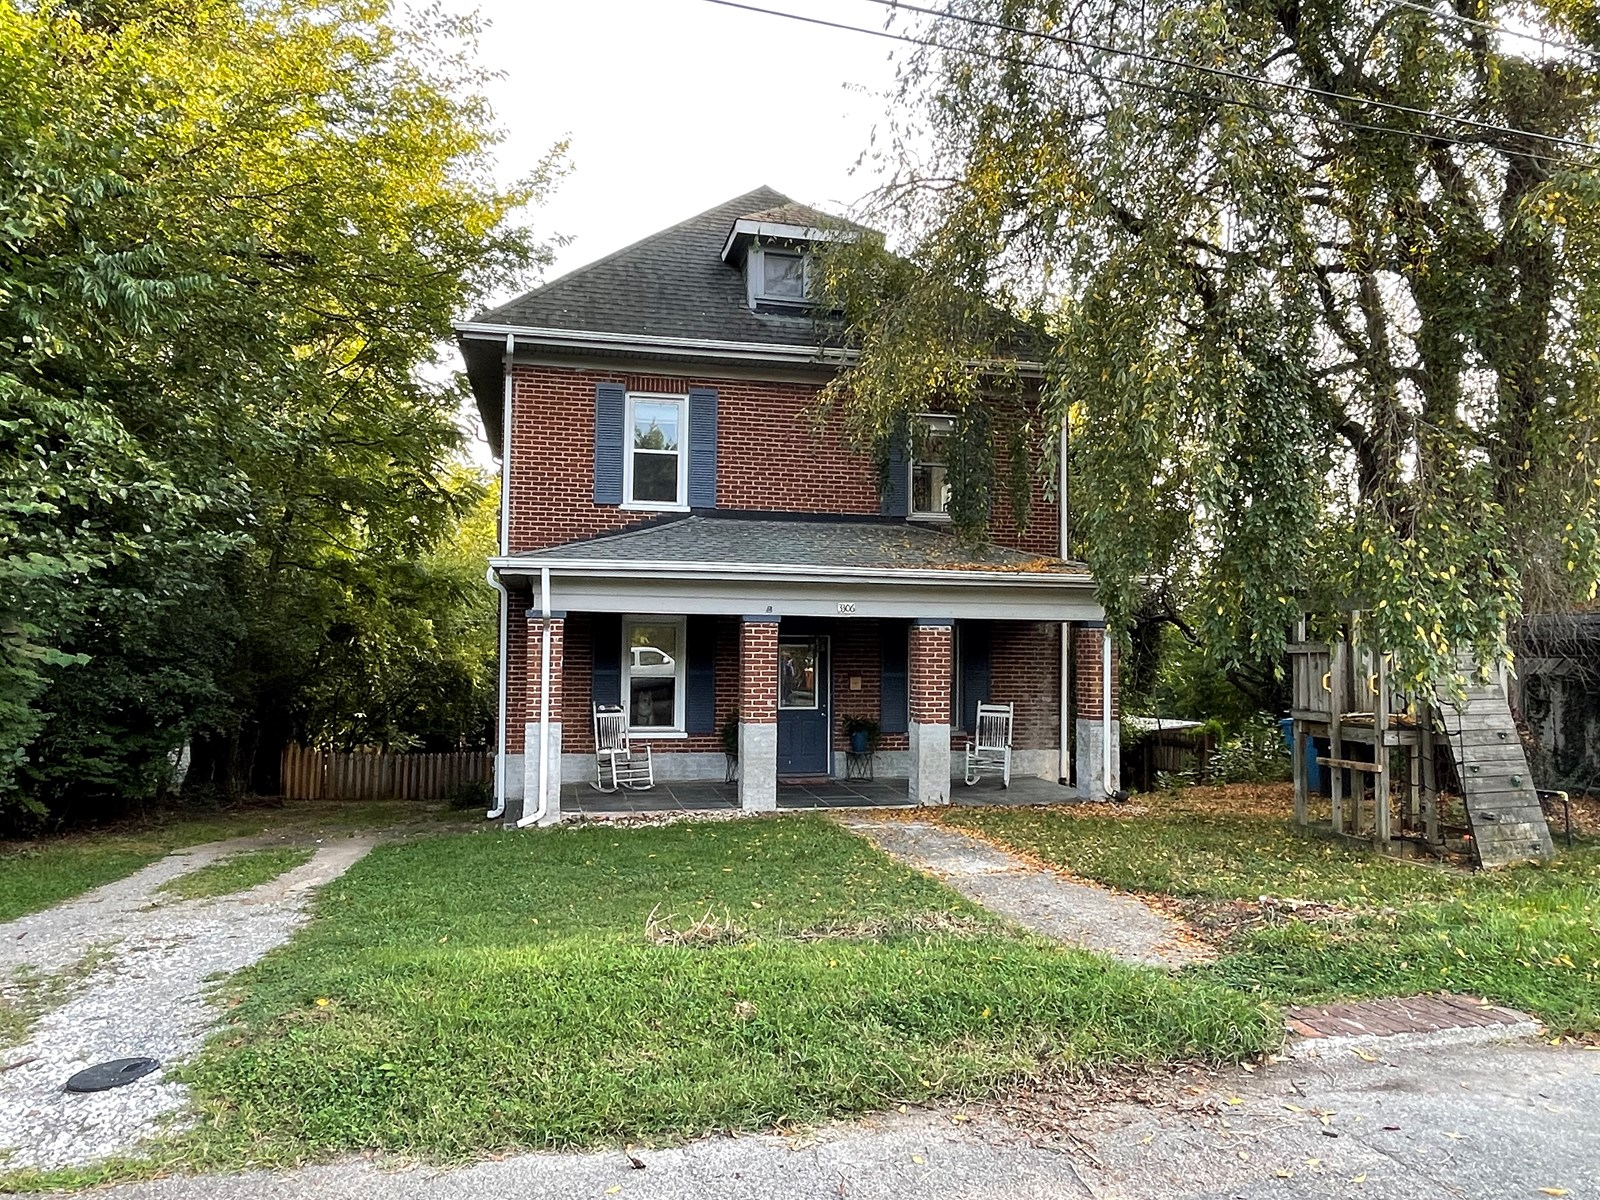 Gorgeous Brick Home for Sale in Roanoke VA!